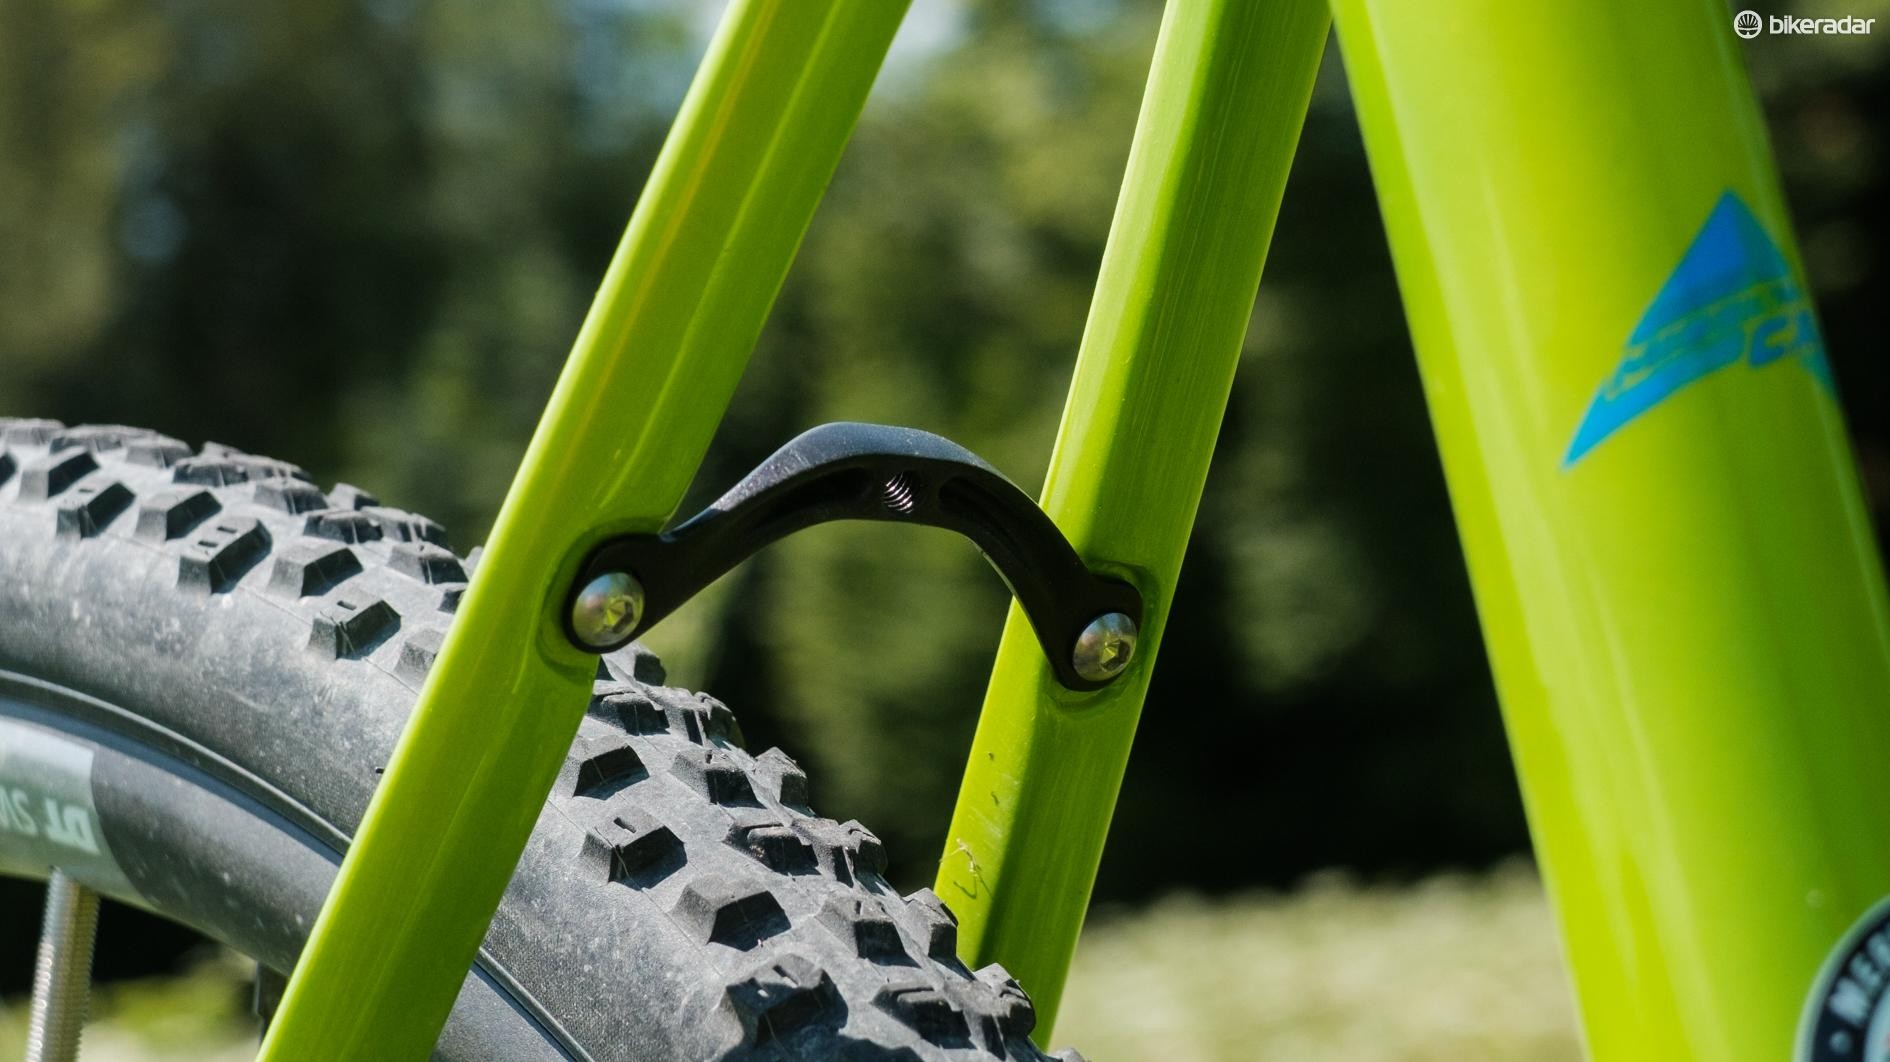 The bike uses a removable seatstay bridge for mudguard mounting